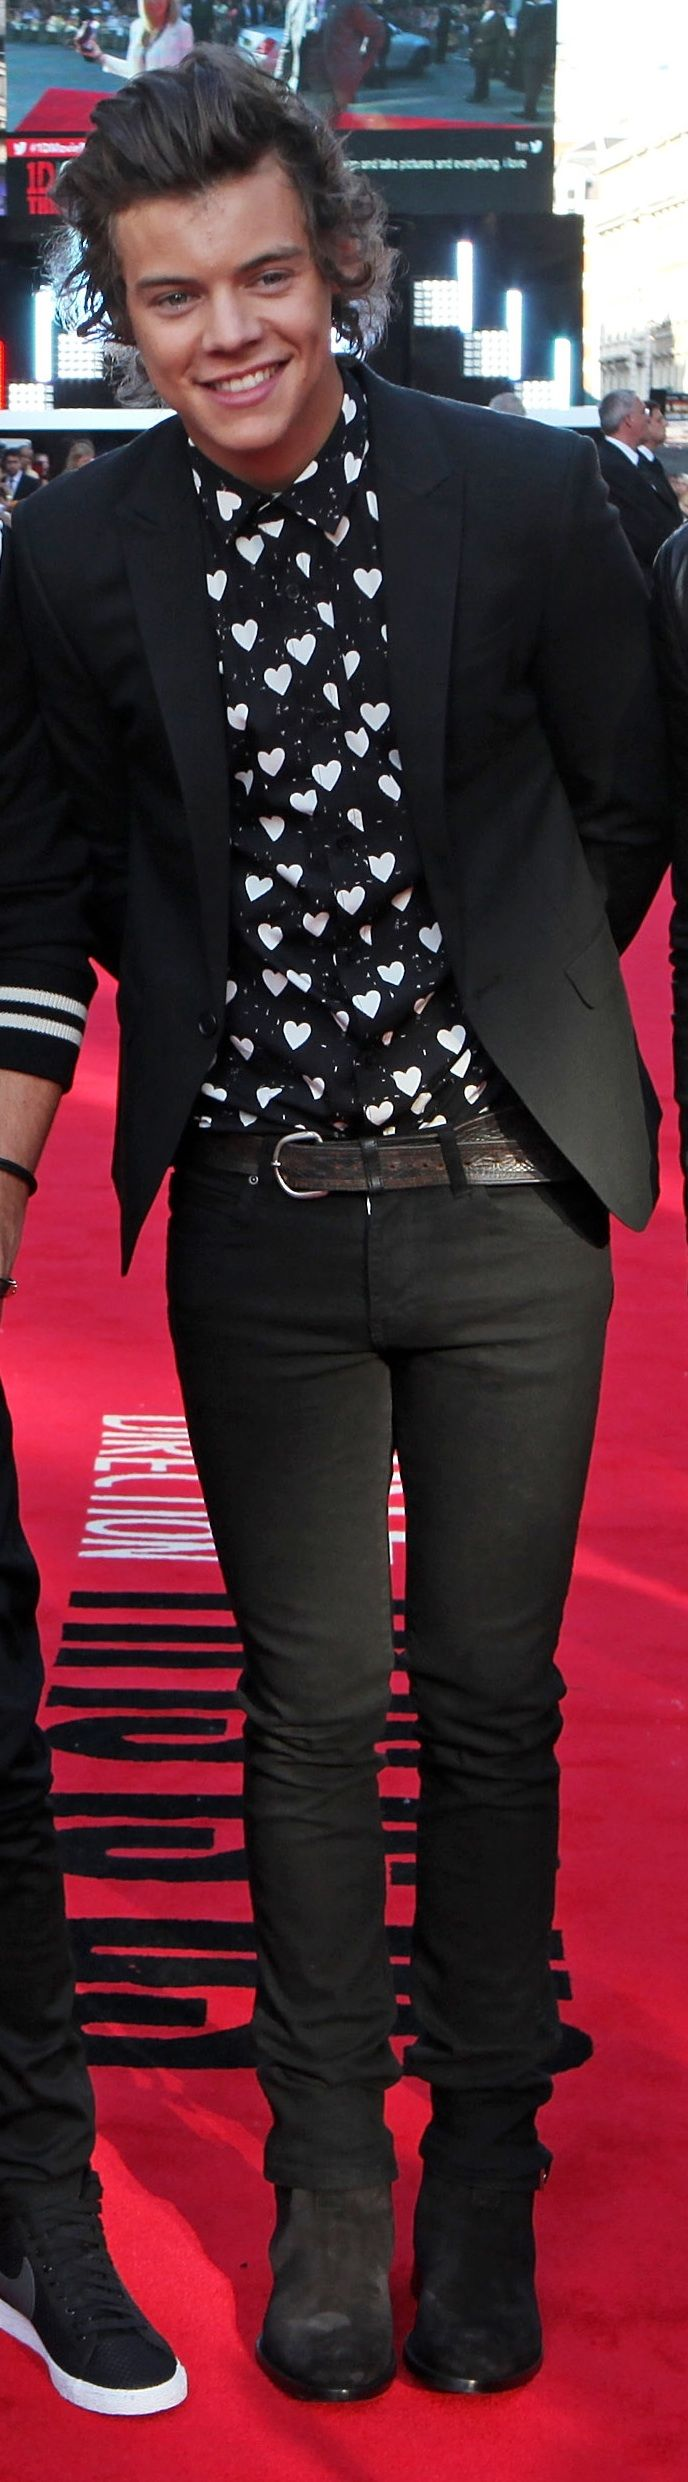 British musician Harry Styles wearing Burberry to attend the premiere of One Direction: This Is Us in London